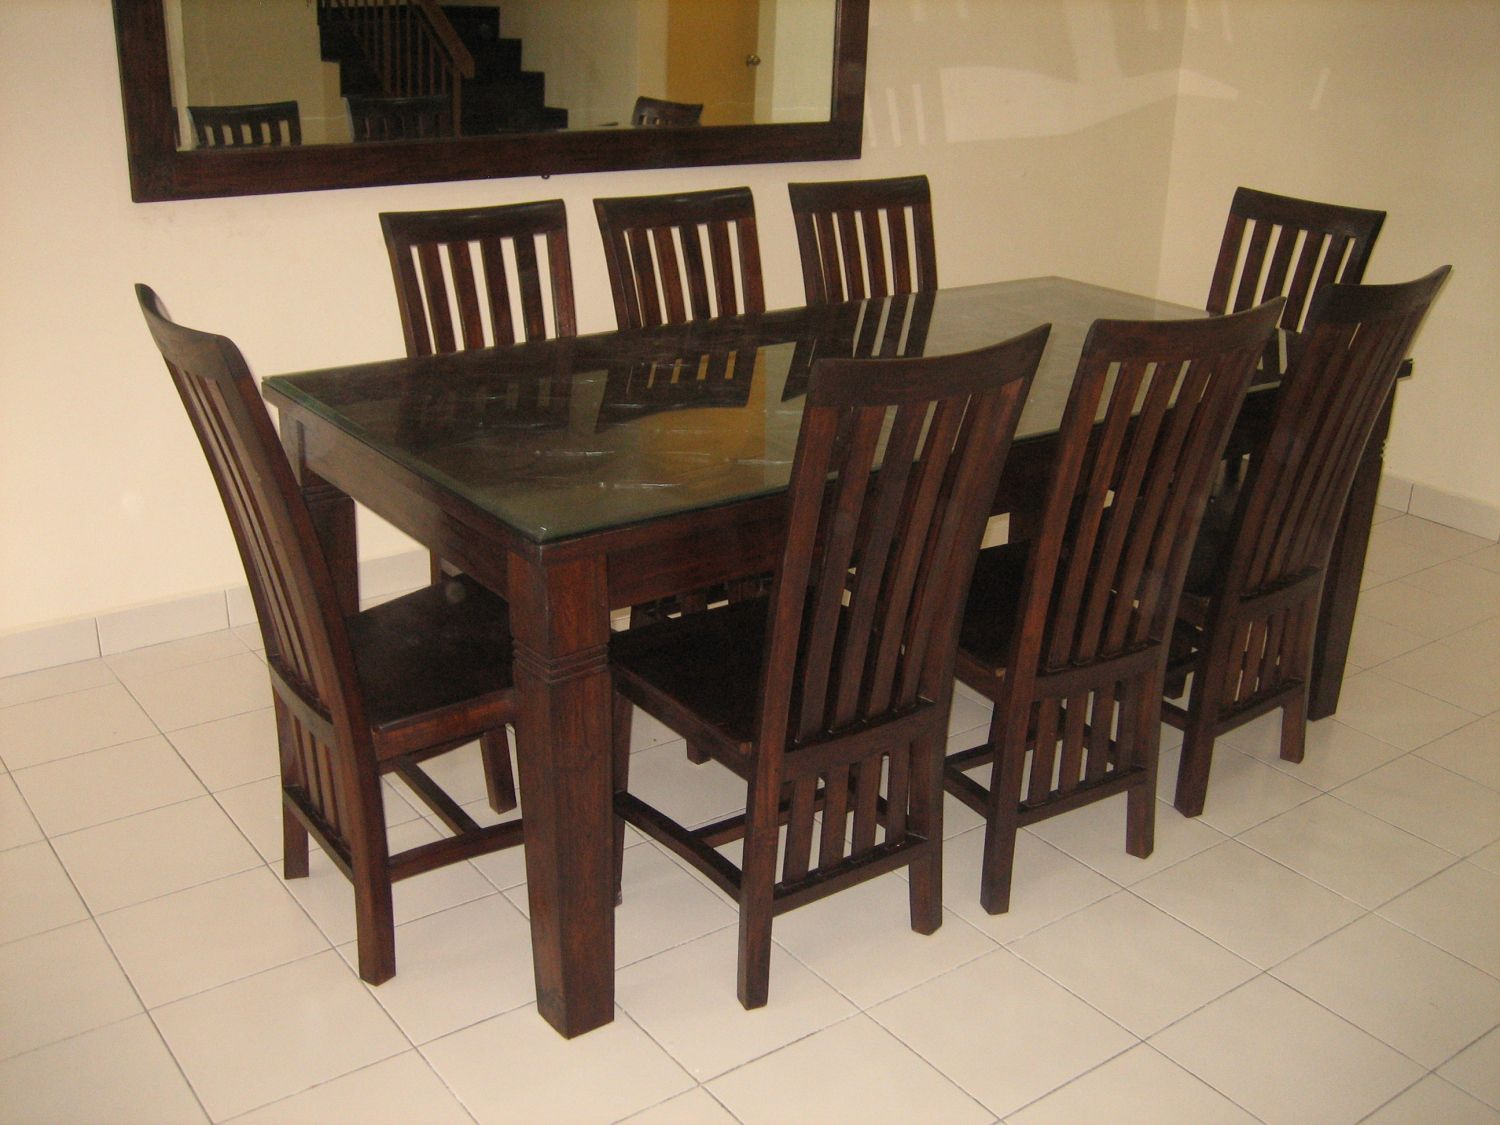 Second Hand Kitchen Table Kitchen Design Ideas Images Check More At Http Www Entropi Interior Design Dining Room Dining Room Table Set Vintage Dining Table